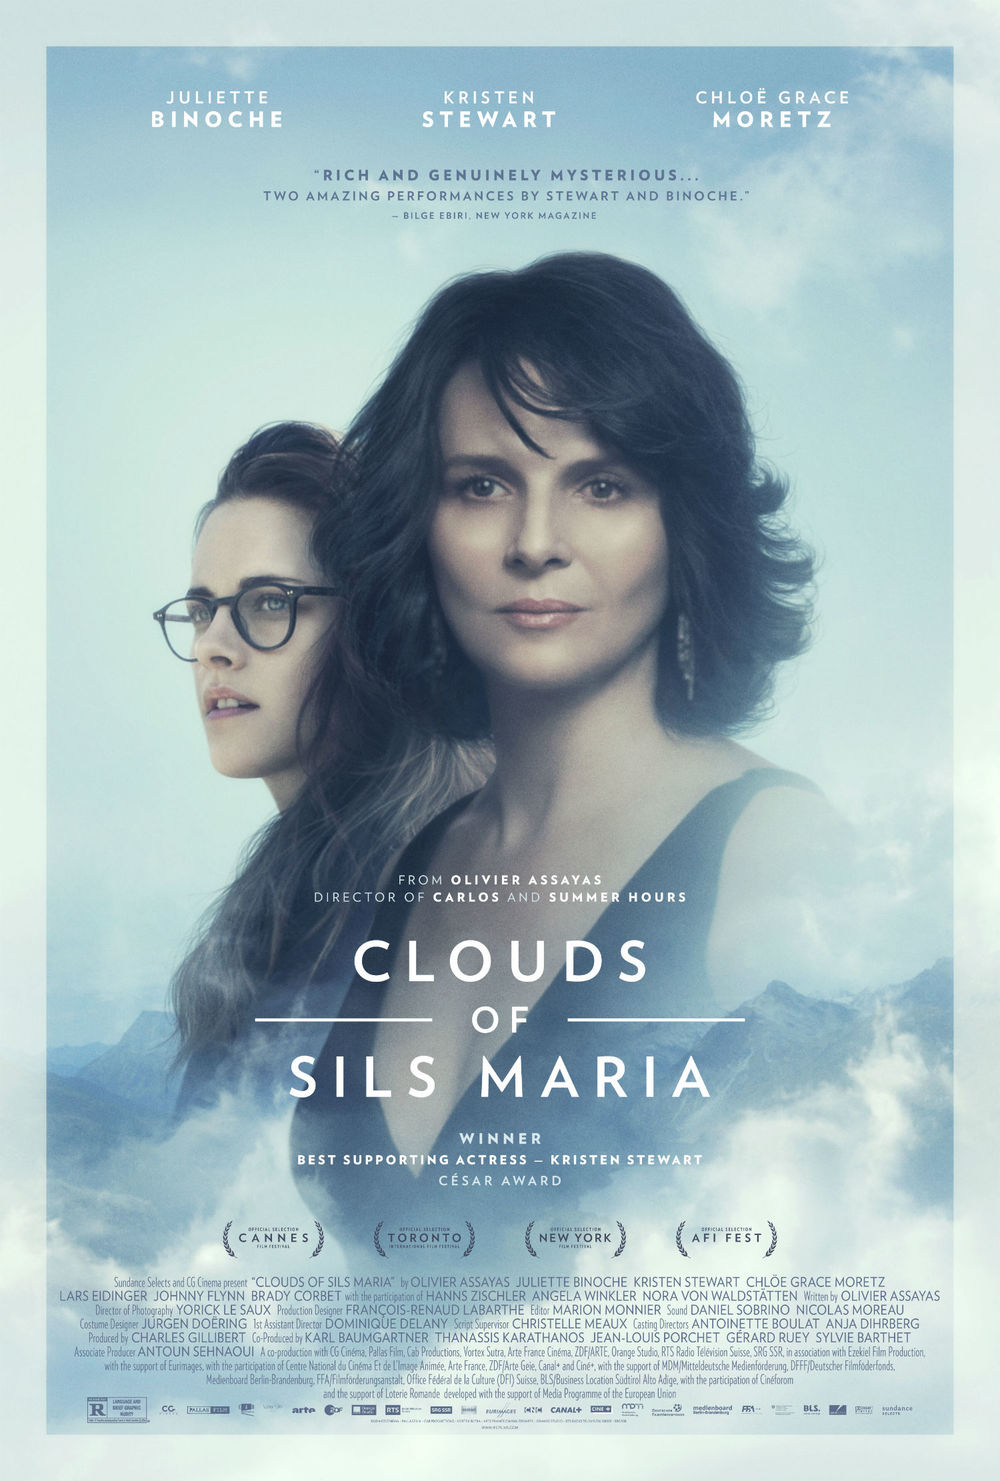 Clouds-of-Sils-Maria-U.S-poster.jpg